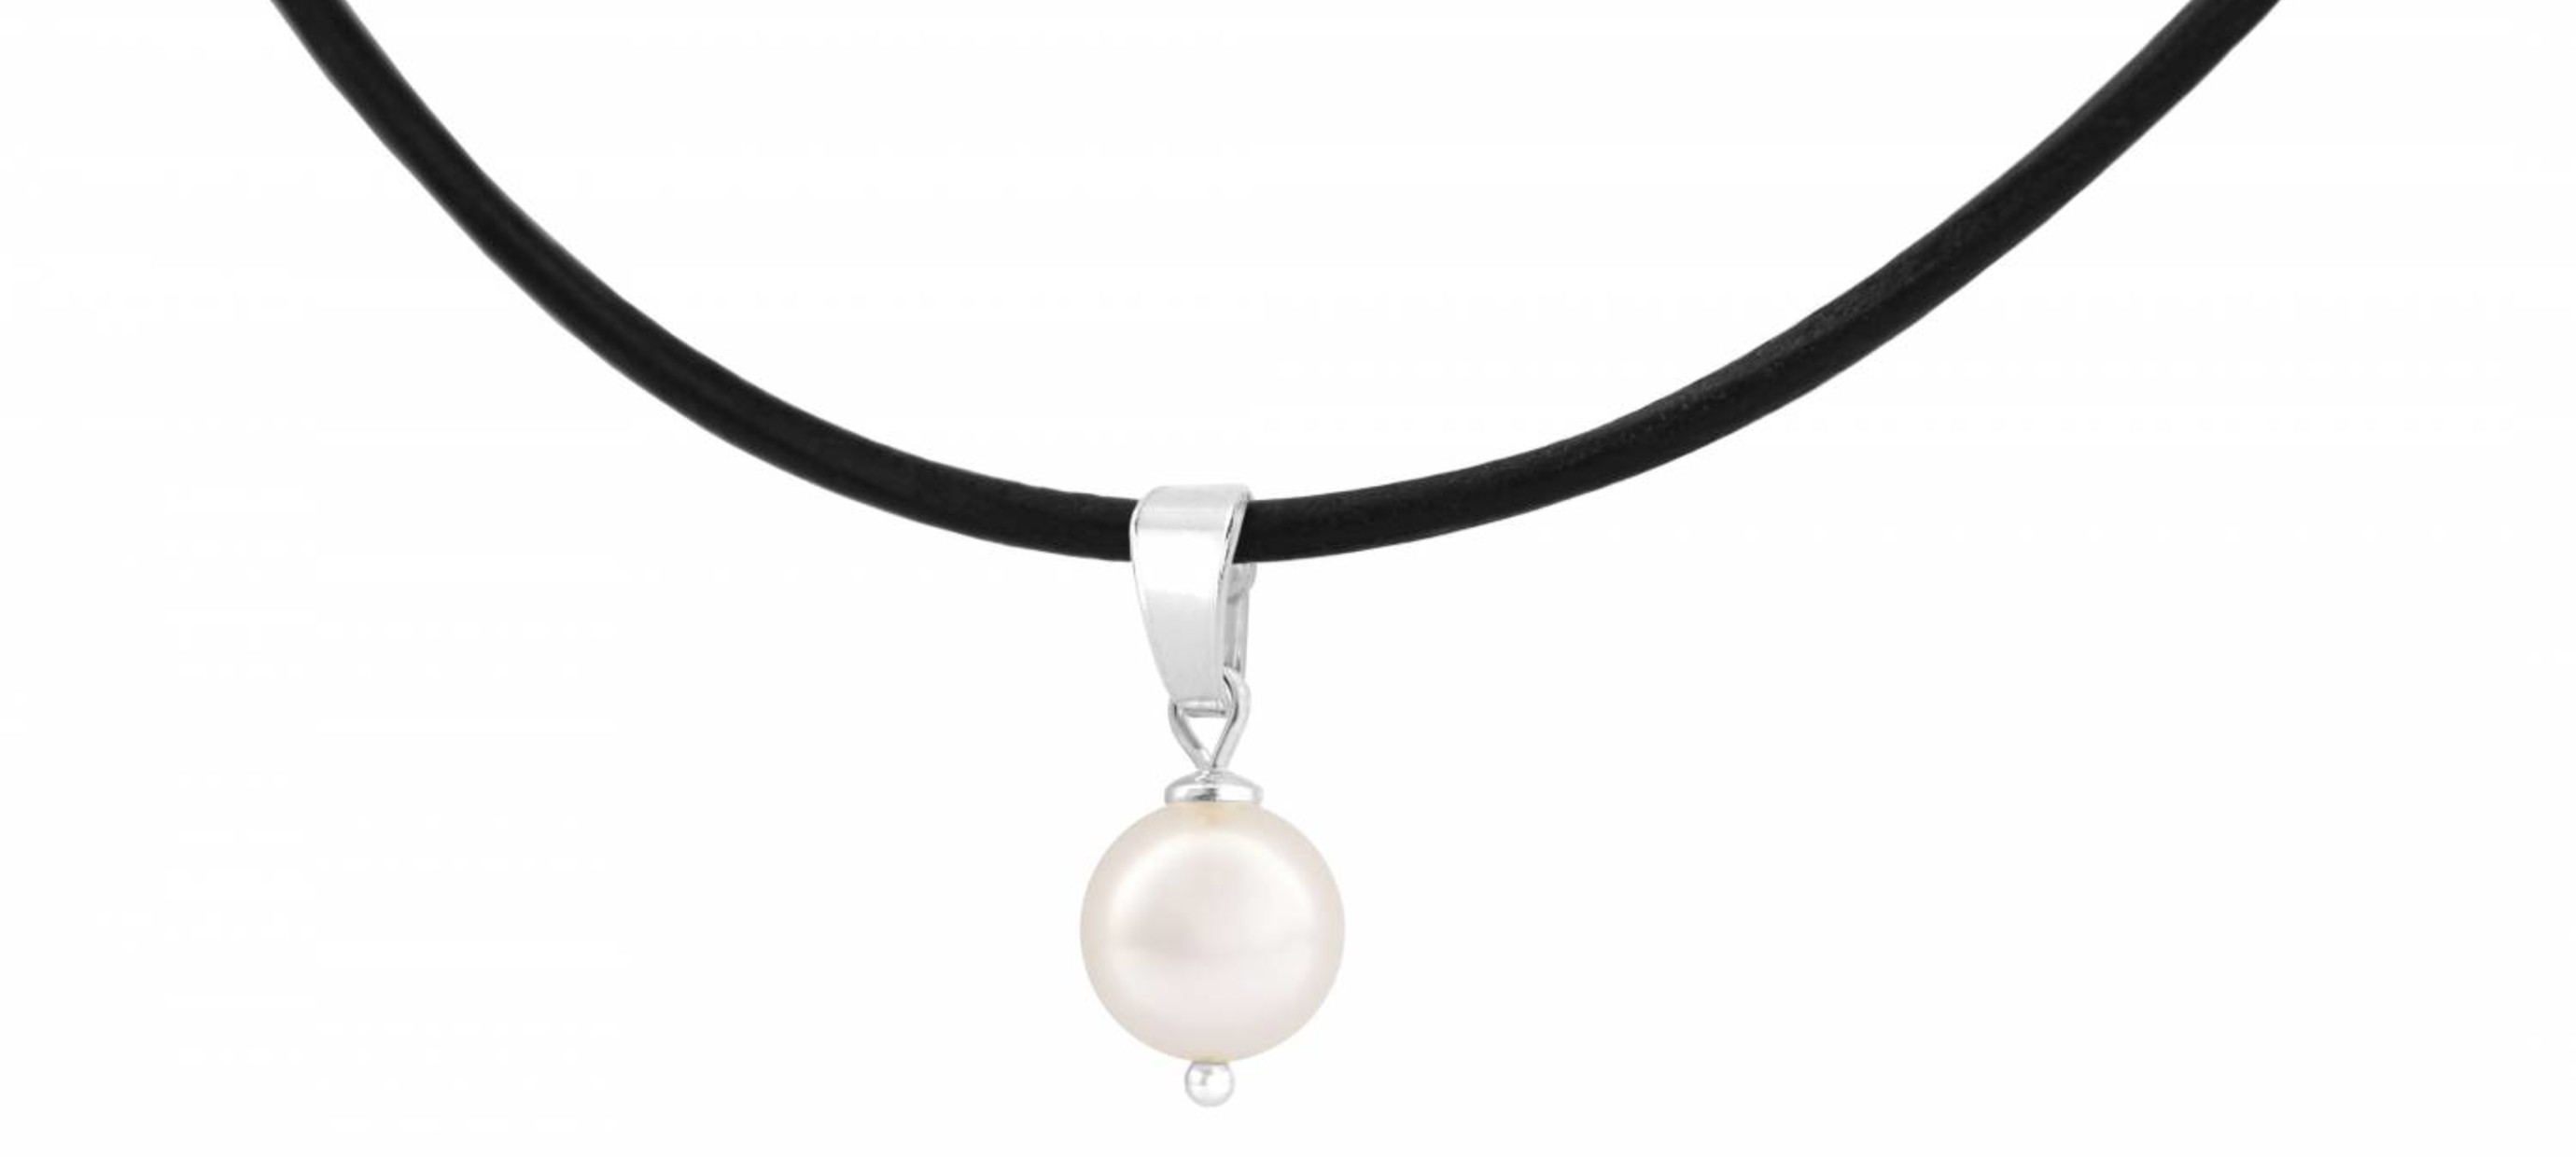 Trendy choker necklaces with pendants